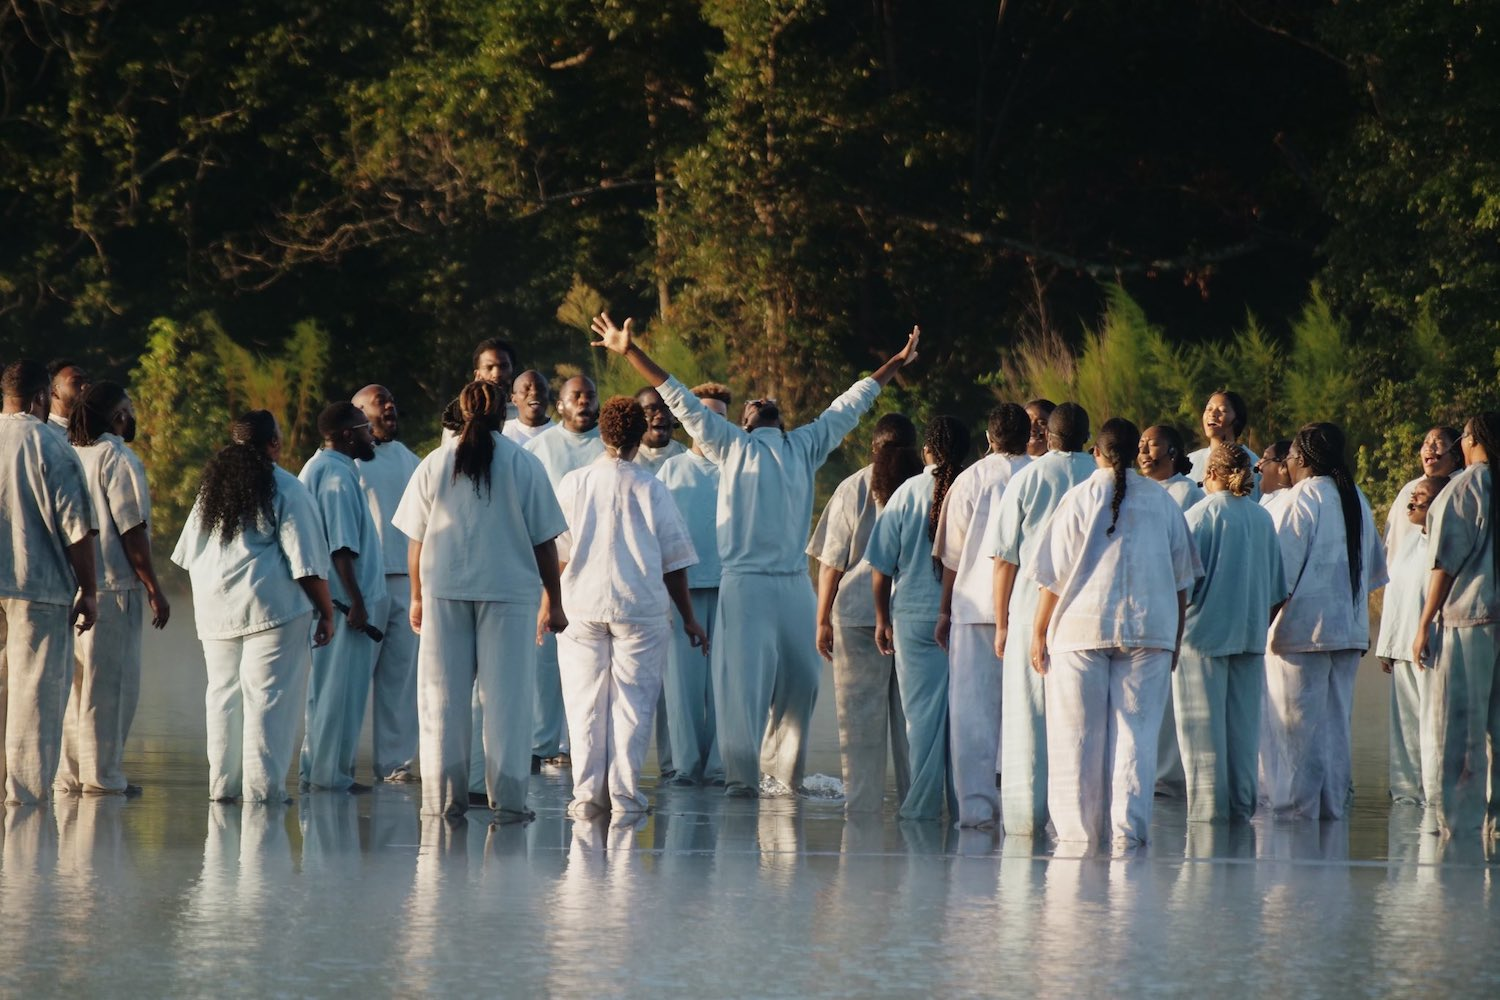 Kanye West Walks on Water During His Sunday Church Service